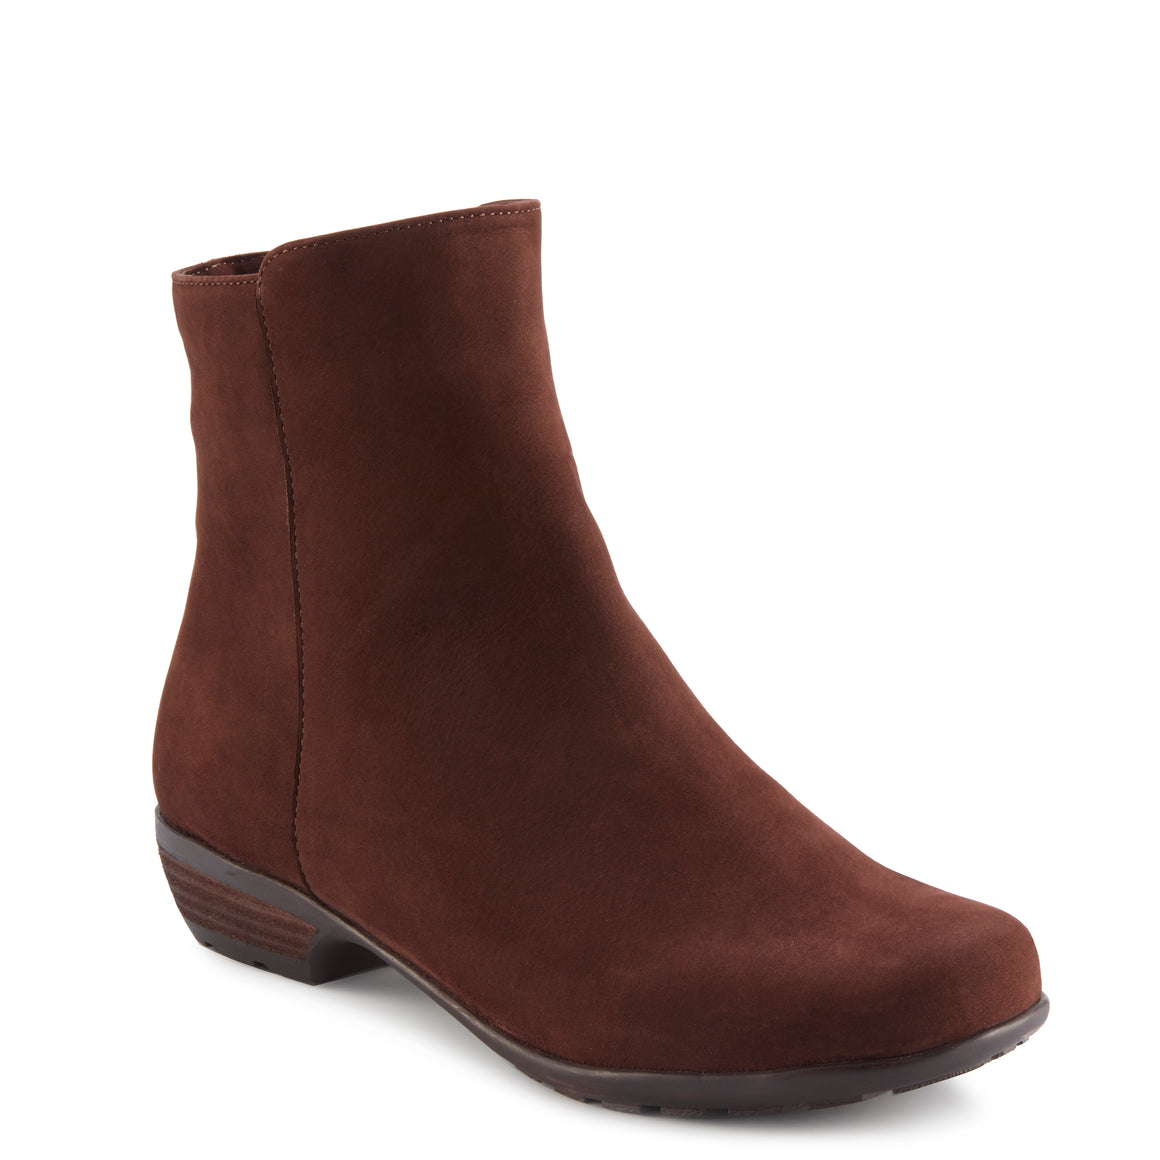 Elsie: Brown Suede